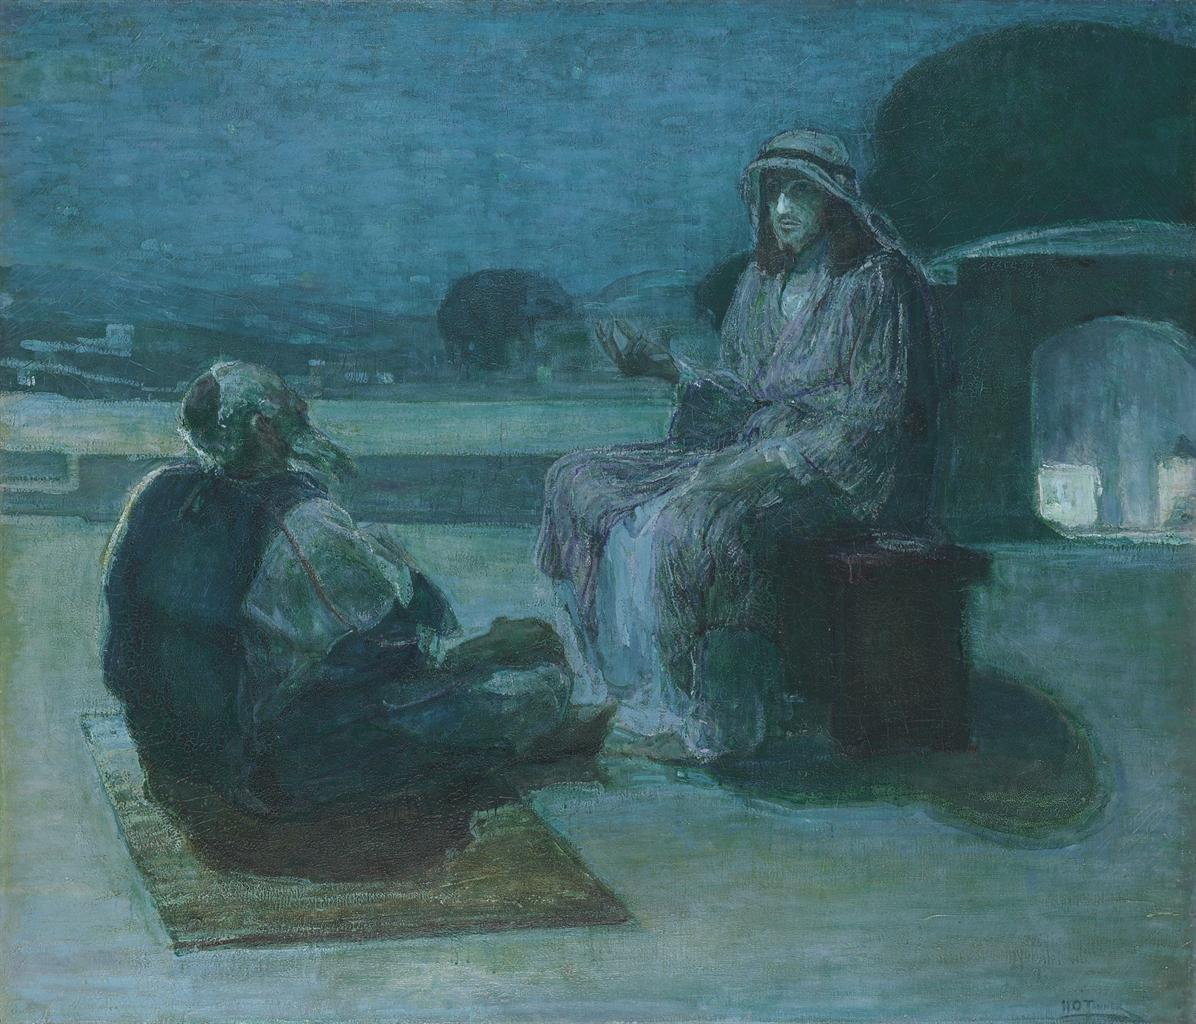 Nocturnal - the best nocturne paintings: Henry Ossawa Tanner, Nicodemus Coming to Christ